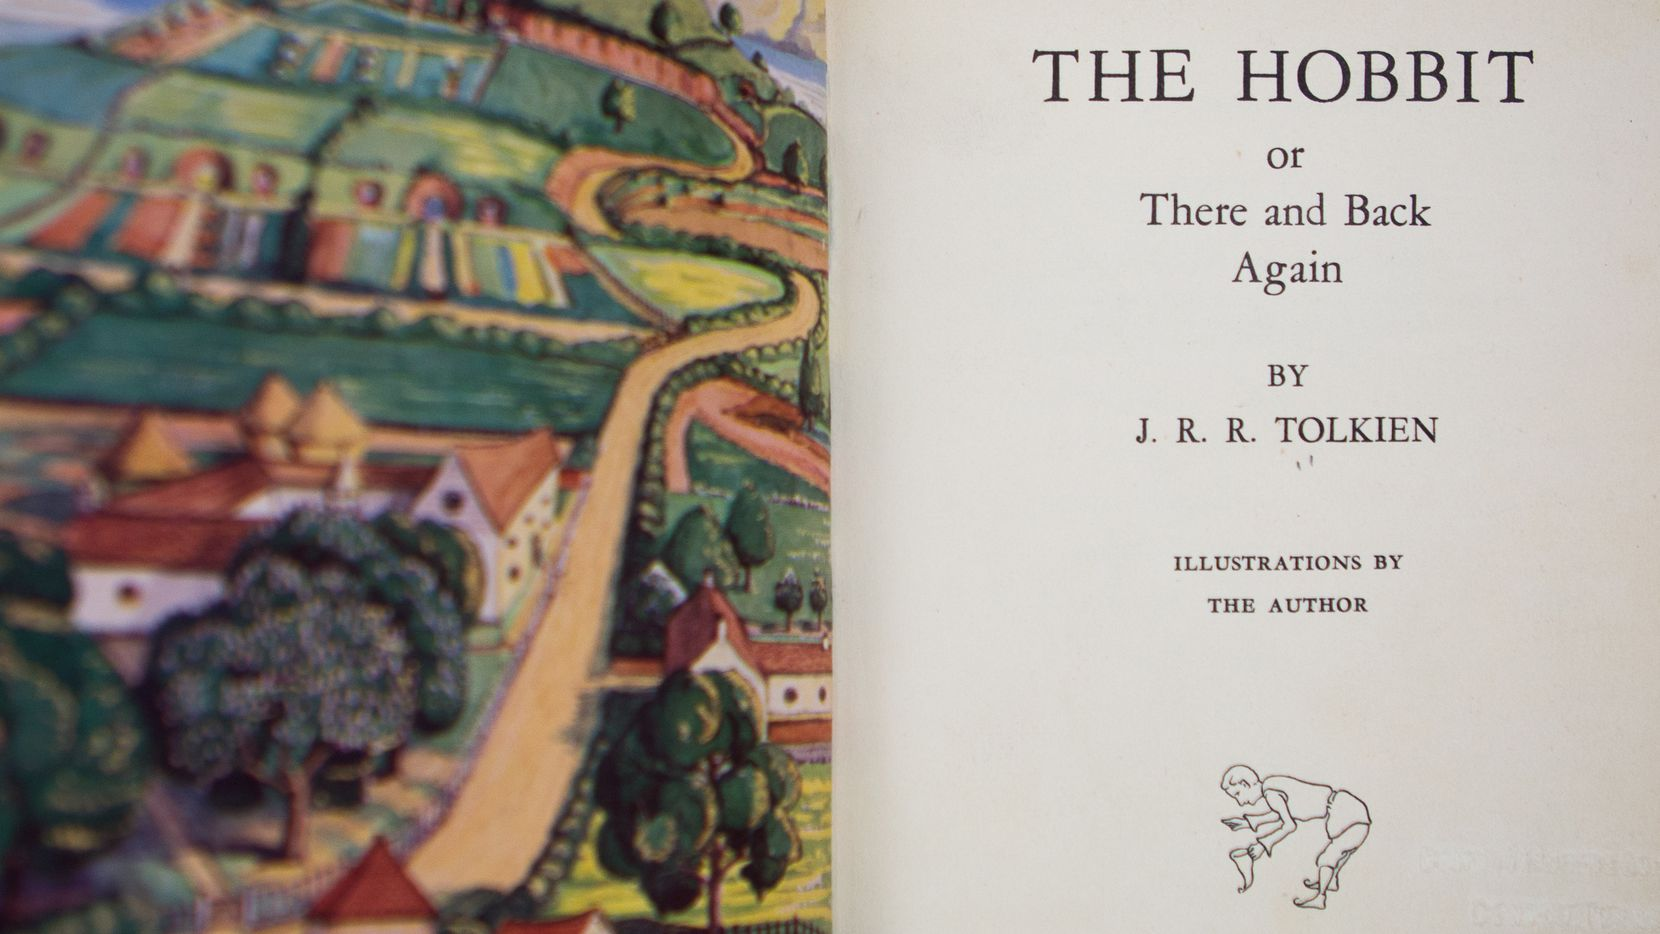 A first edition copy of The Hobbit by J.R.R. Tolkien was returned to the University of North Texas Libraries with an anonymous letter last week.